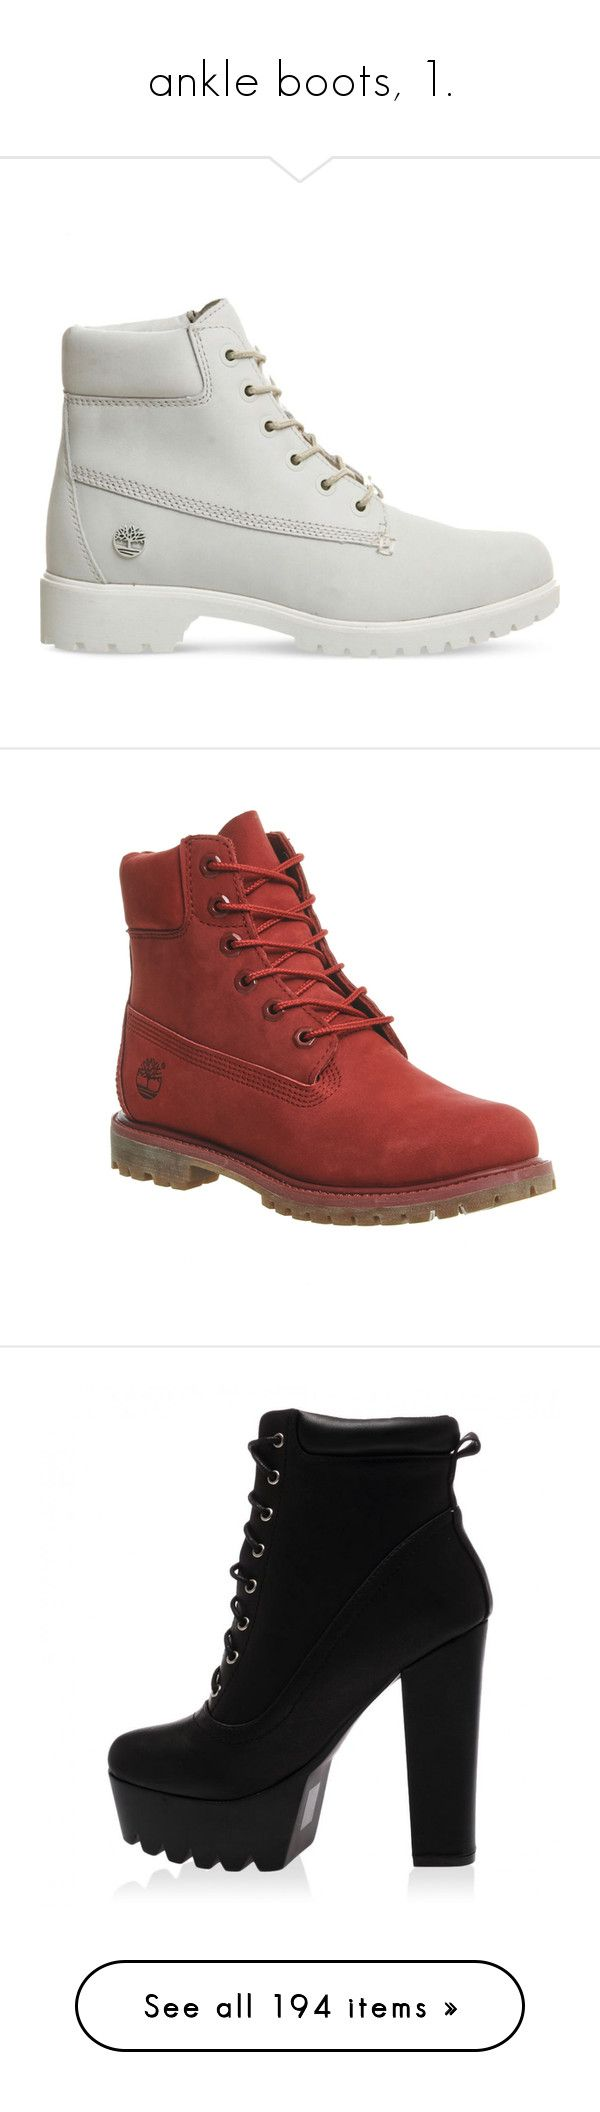 """""""ankle boots, 1."""" by theimanimo ❤ liked on Polyvore featuring shoes, boots, shoes - boots, water proof boots, genuine leather boots, rubber sole boots, waterproof boots, white leather shoes, ankle booties and ankle boots"""